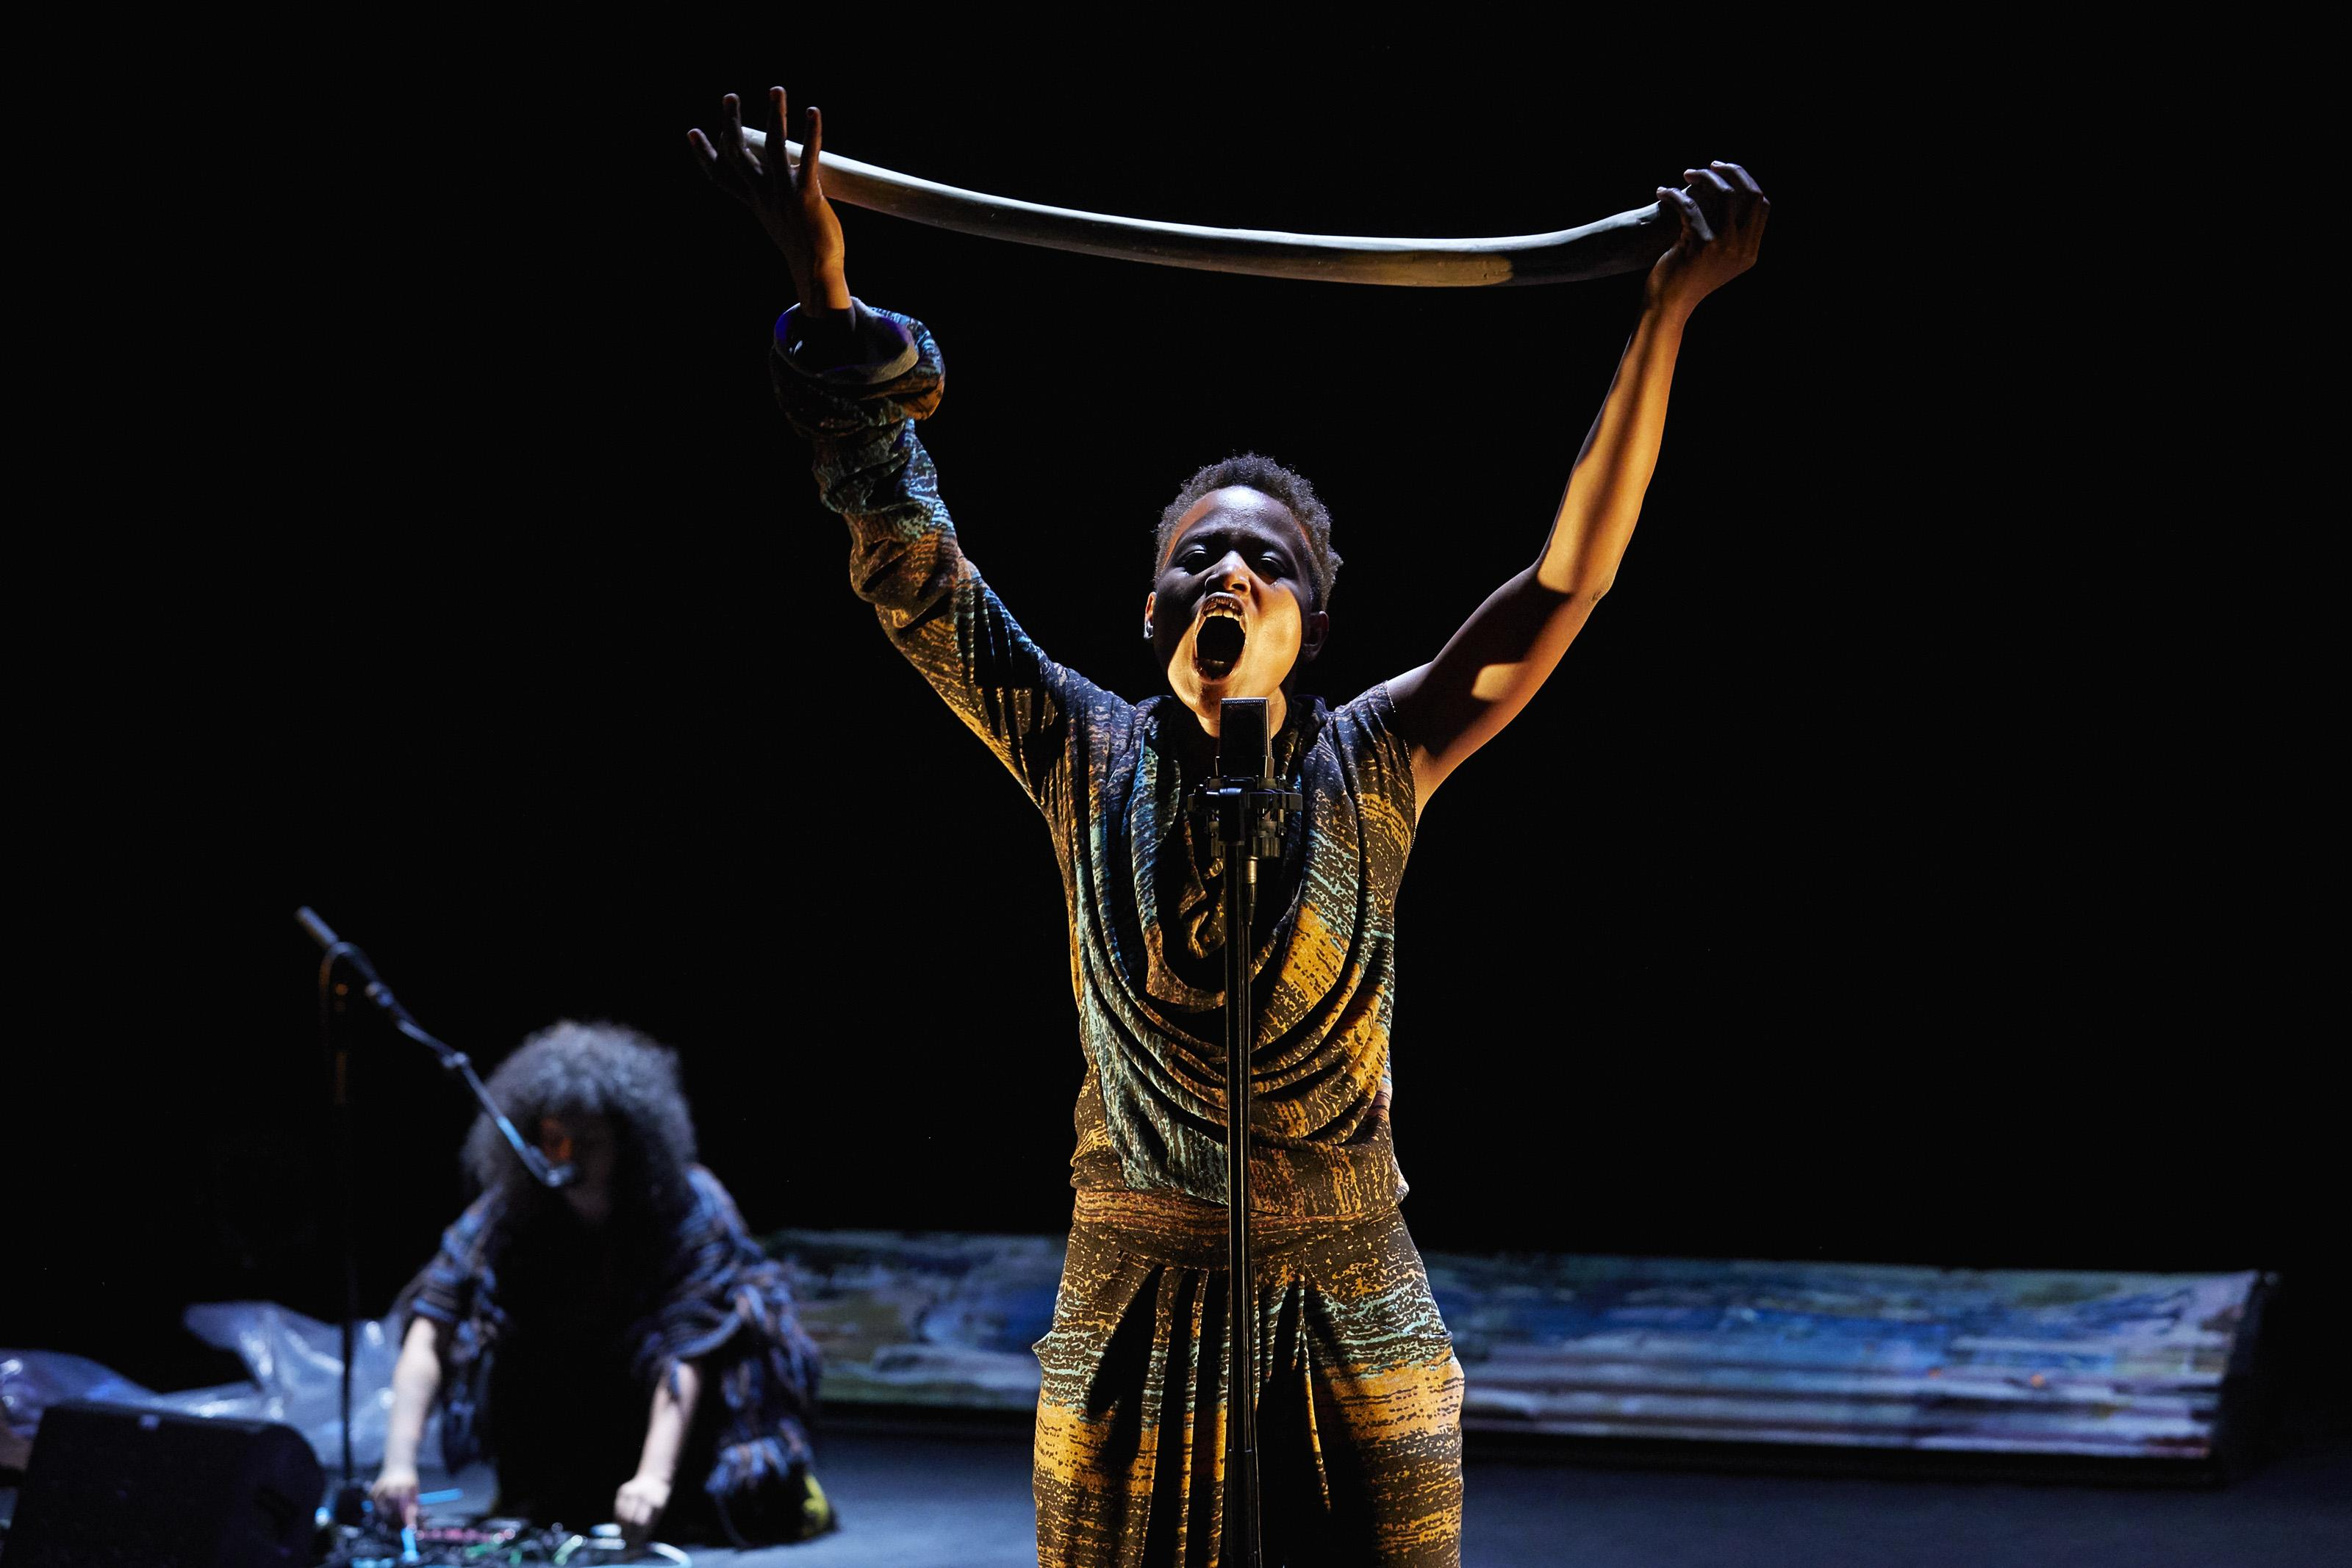 A young black woman stands at a microphone, her mouth open in a cry or in song. She holds a curved length of wood or bone above her head with both hands.